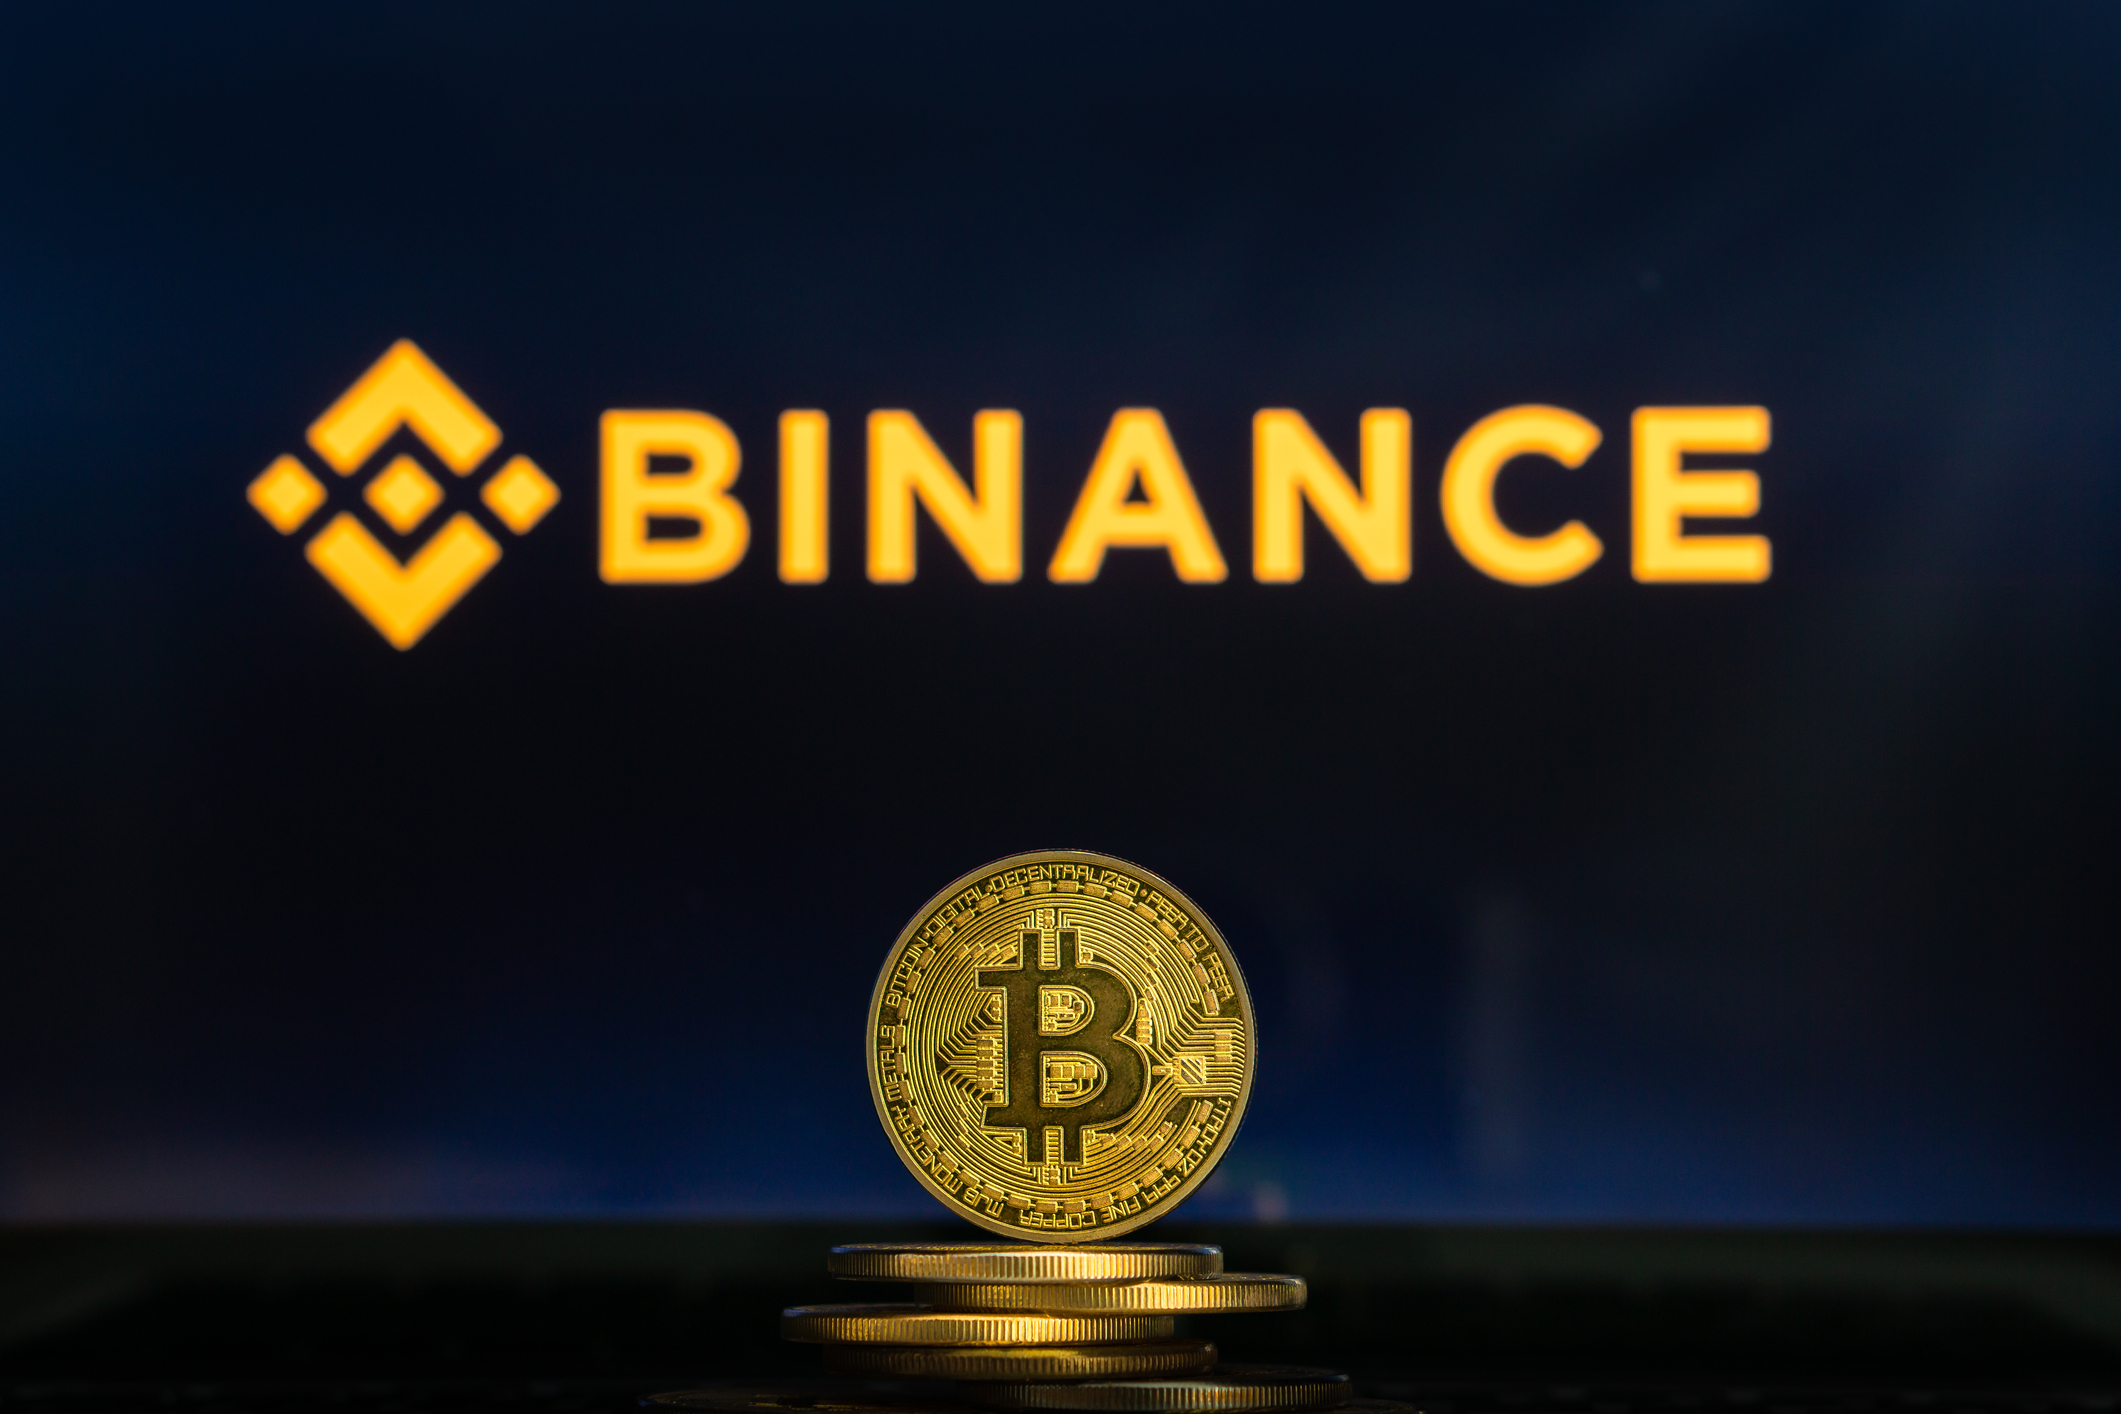 Binance report: Bitcoin (BTC) dominance at 80% by 2020